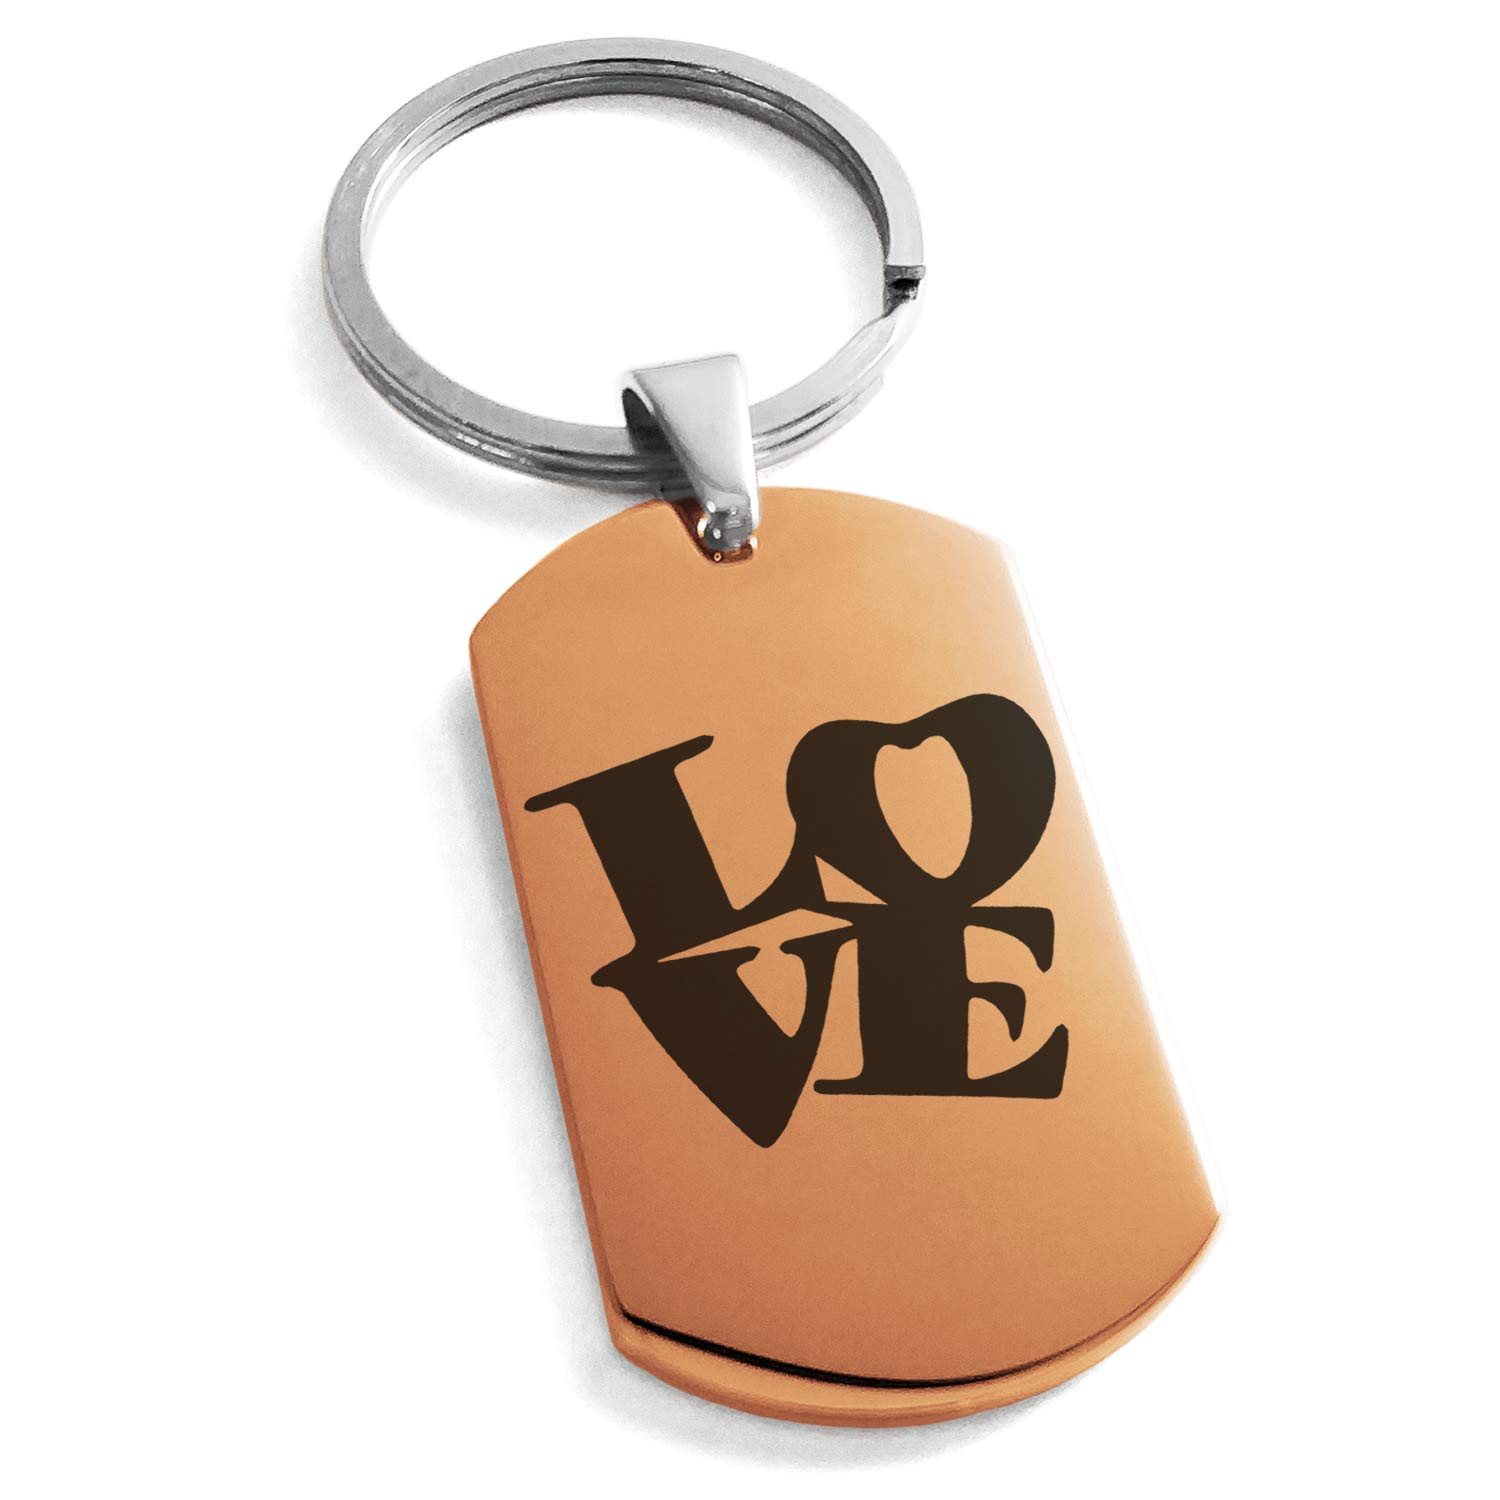 Tioneer Rose Gold Stainless Steel Love so Iconic Engraved Dog Tag Keychain Keyring by Tioneer (Image #1)